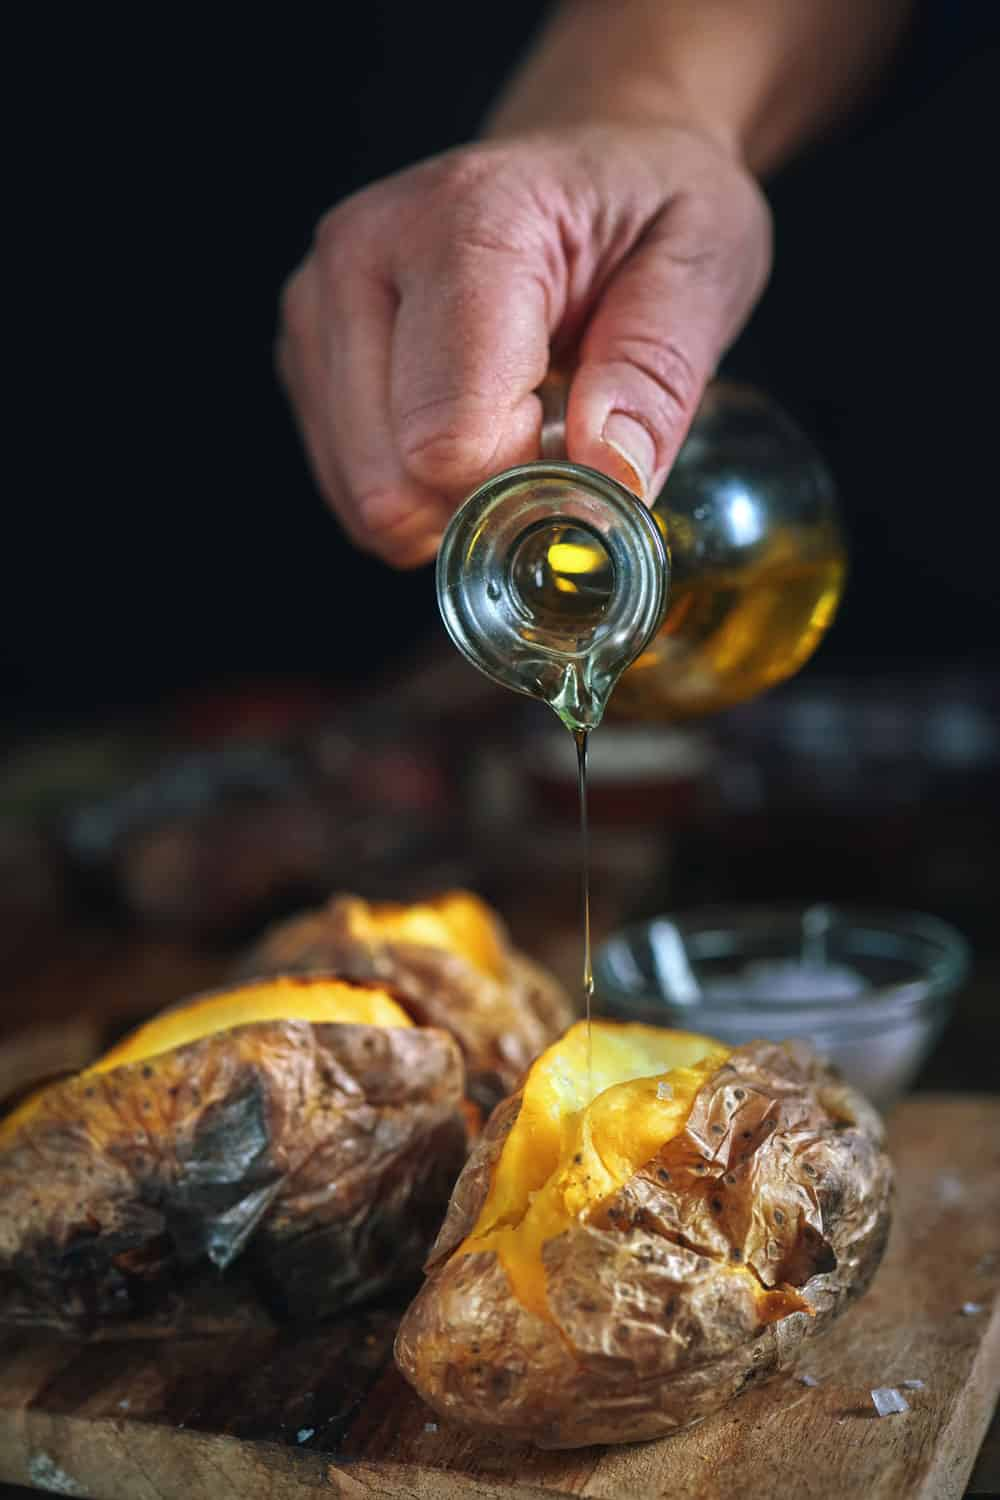 Baked Potato with Sea Salt and Olive Oil